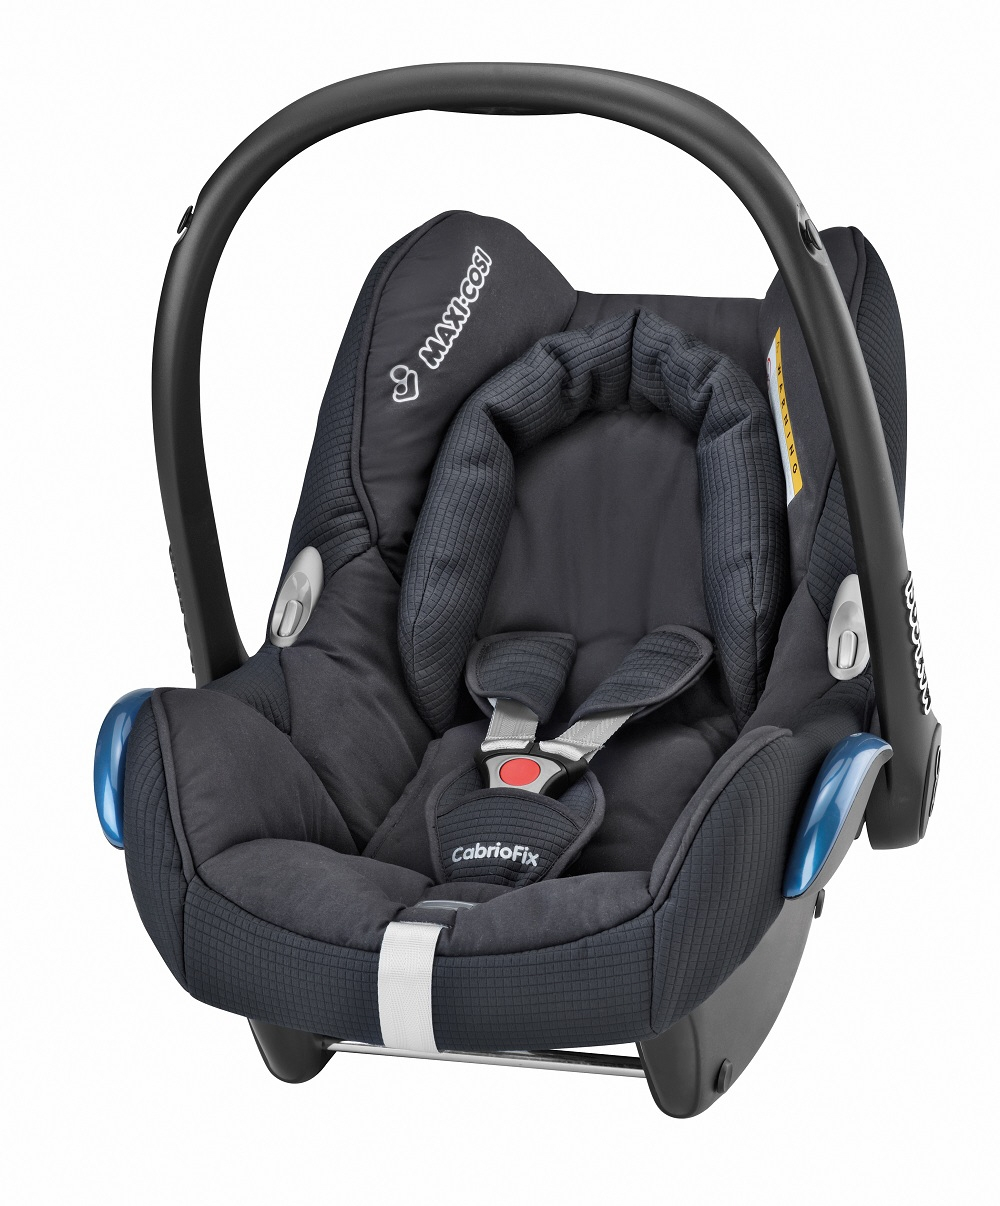 maxi cosi babyschale cabriofix 2014 total black online. Black Bedroom Furniture Sets. Home Design Ideas